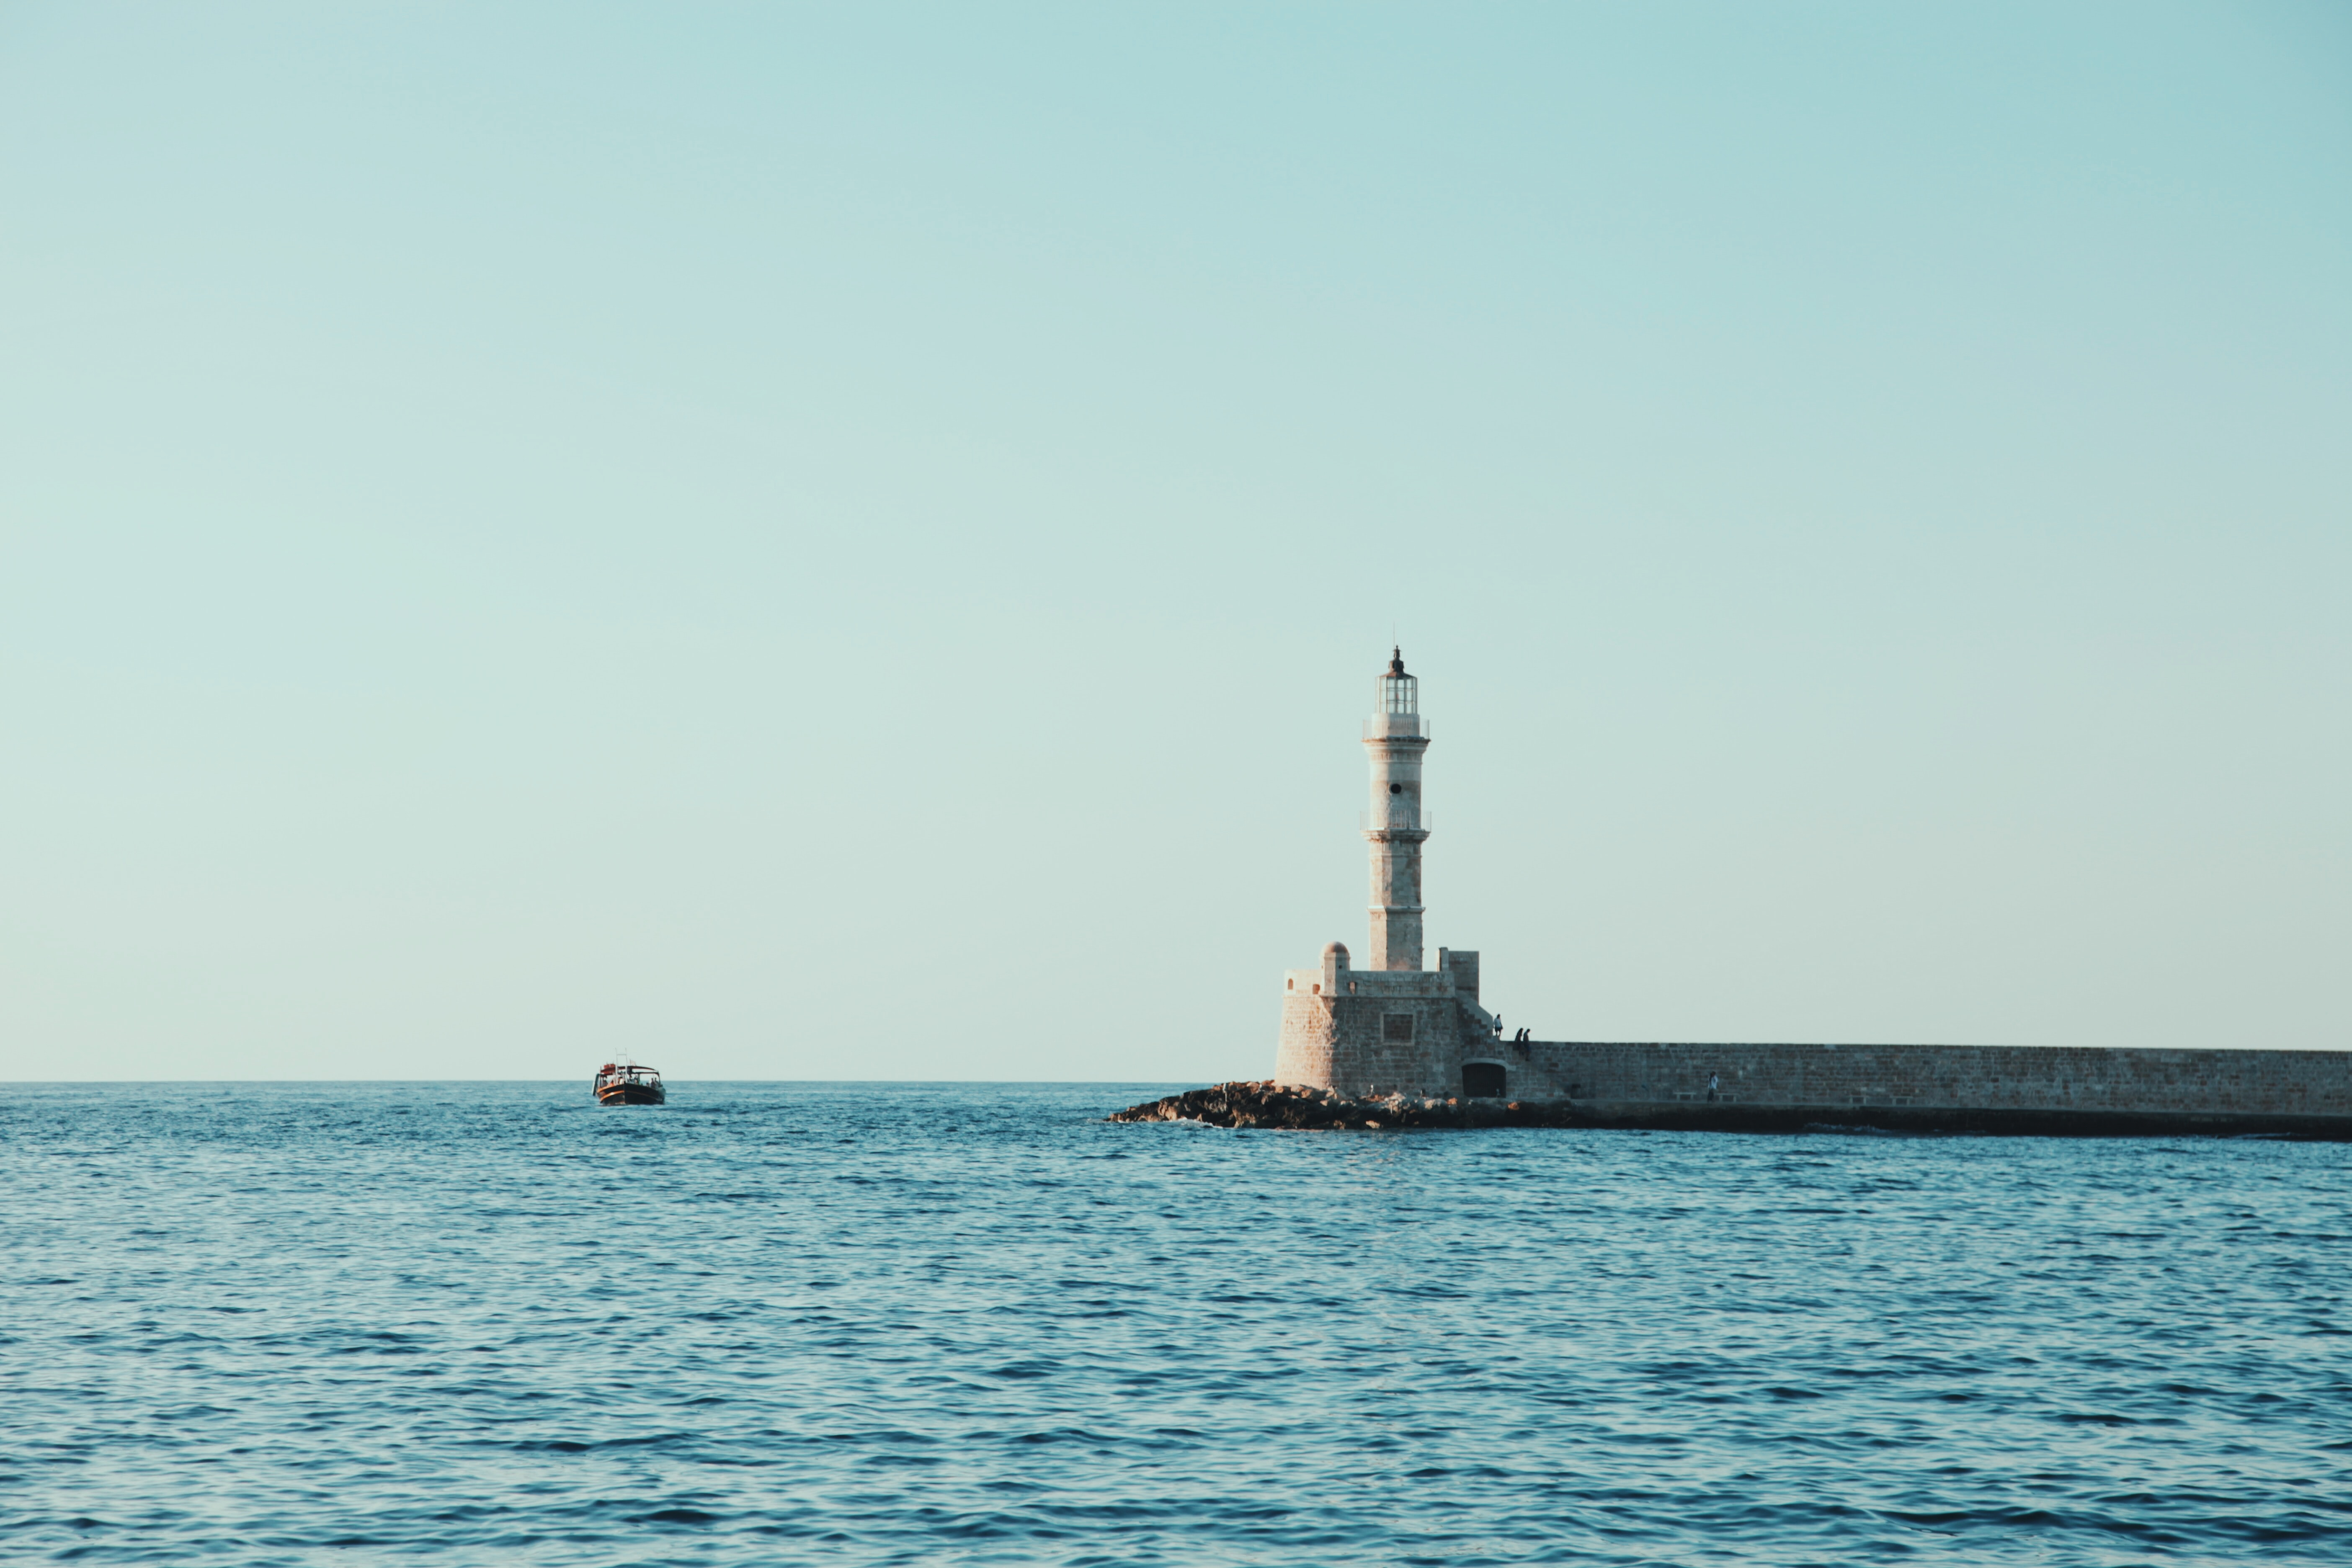 white and gray lighthouse surrounded by body of water under blue sky at daytime